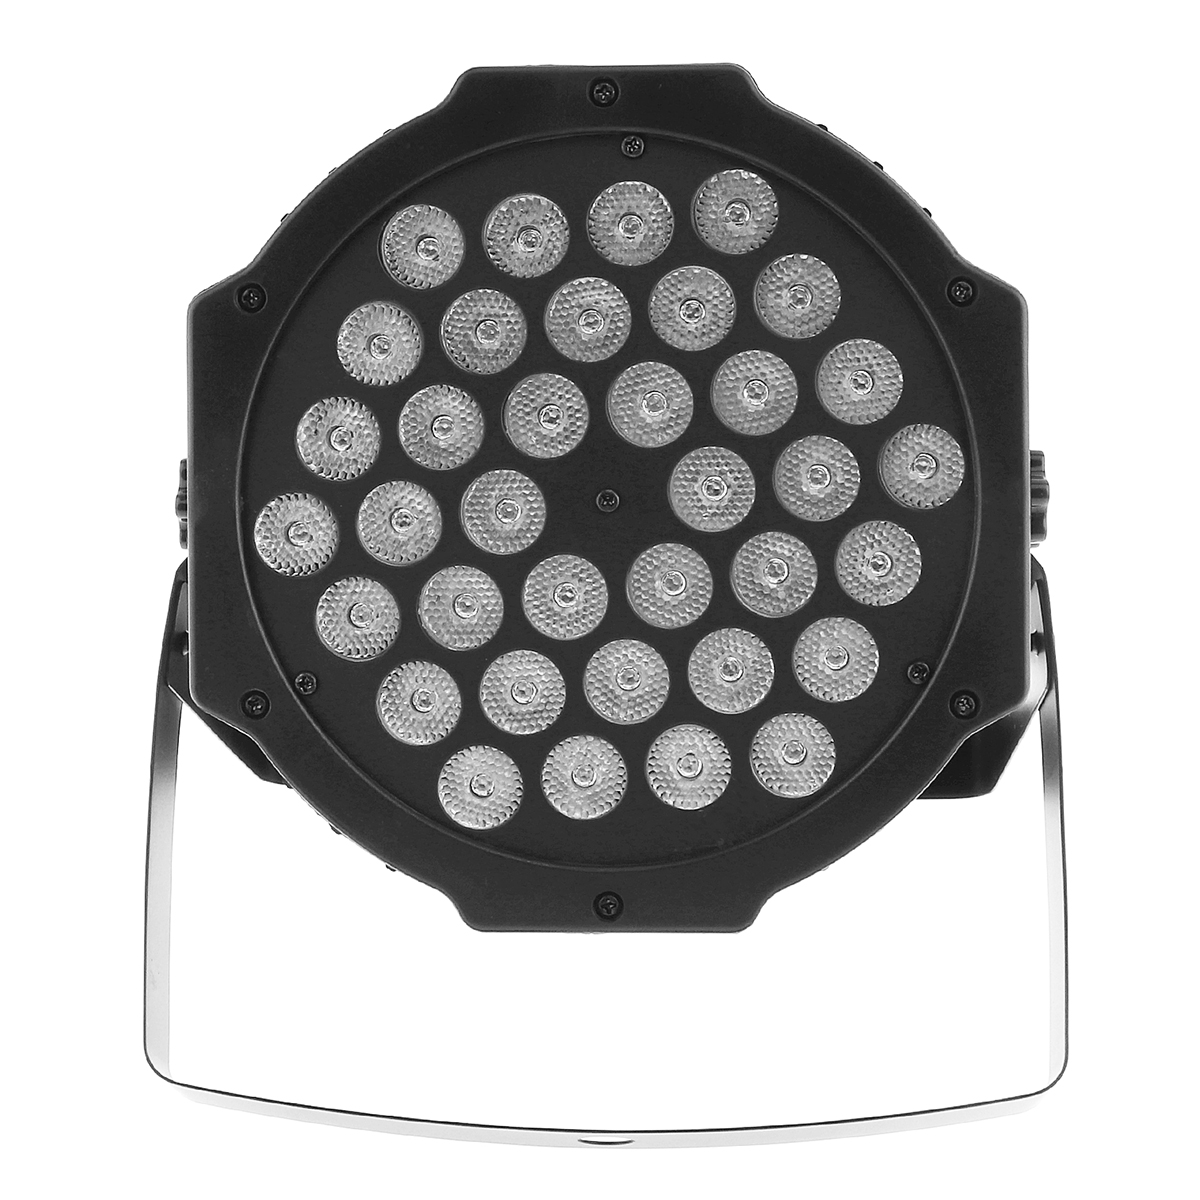 2Pcs 36LED RGB Stage Light Effect Stroboscope Flash Lamp with Stand and DMX Interface for Disco / Stage / Bar Effect US Plug